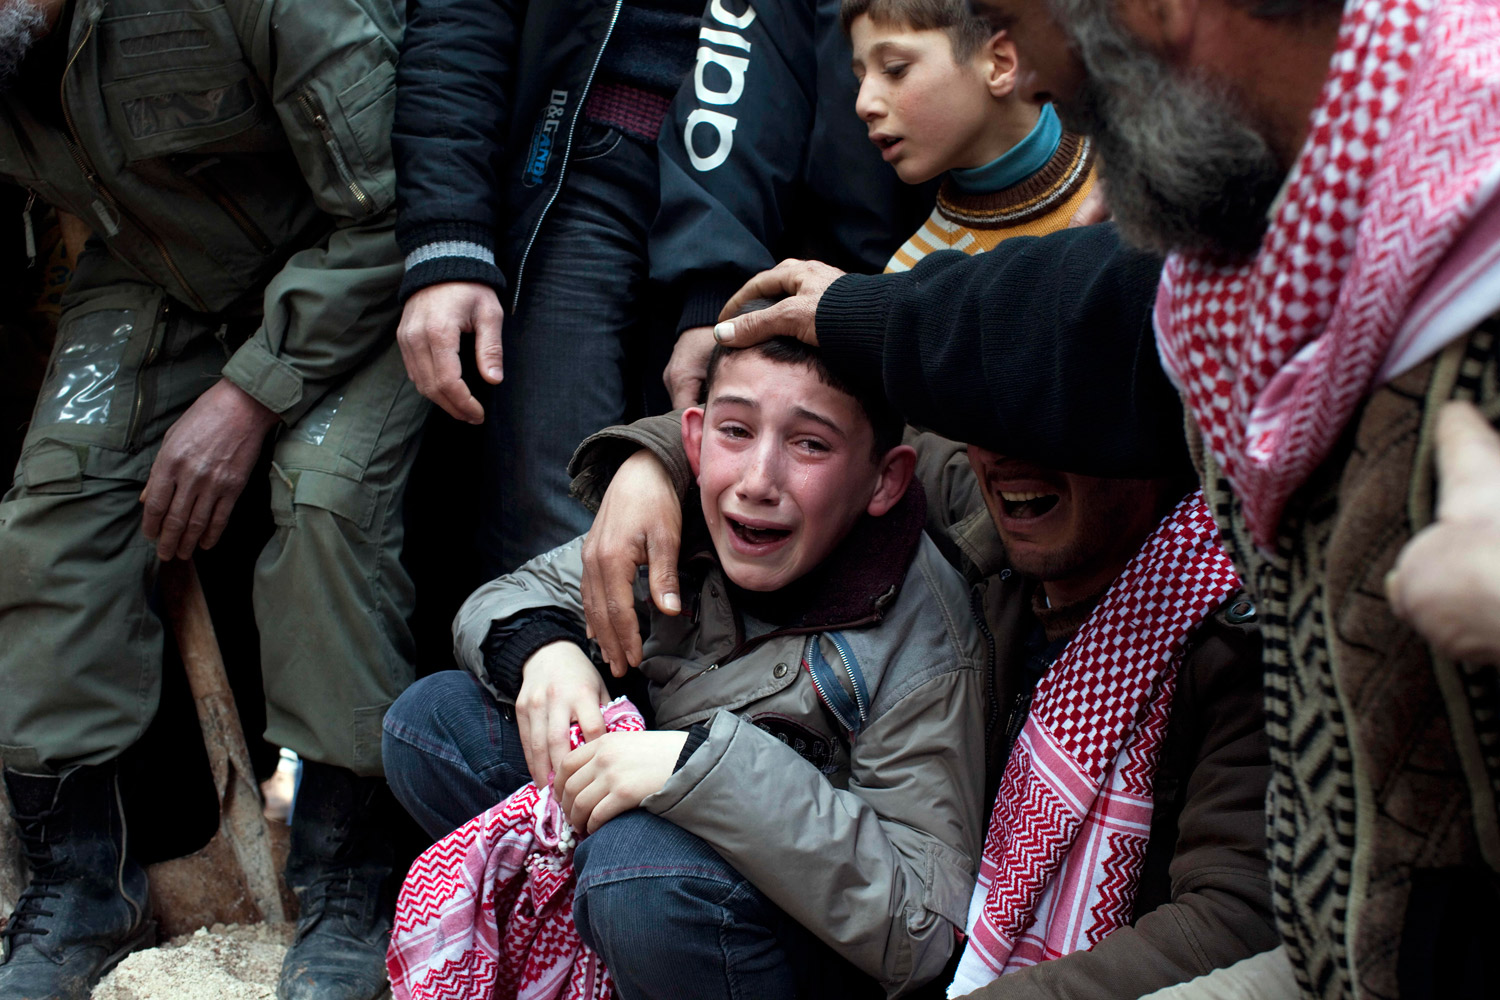 March 8, 2012. Ahmed, center, mourns his father Abdulaziz Abu Ahmed Khrer, who was killed by a Syrian Army sniper, during his funeral in Idlib, north Syria.